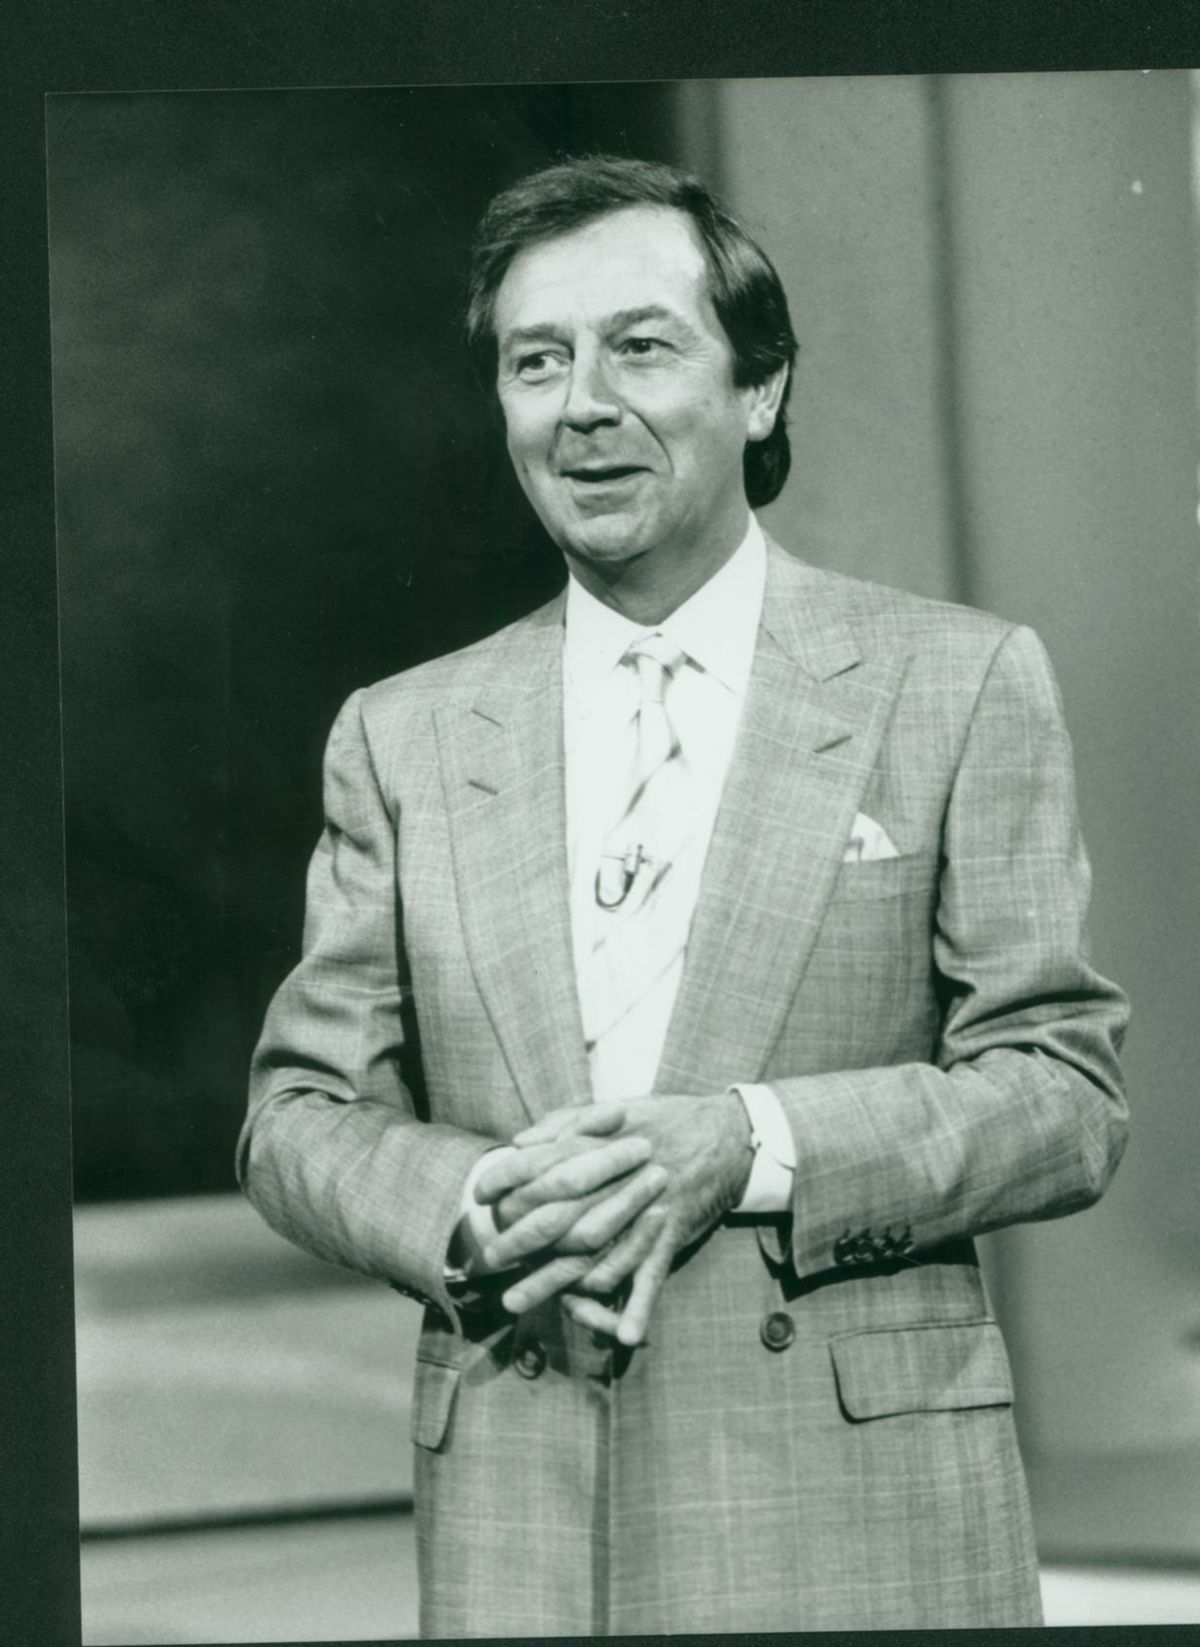 Des O'Connor is best known for his chat shows